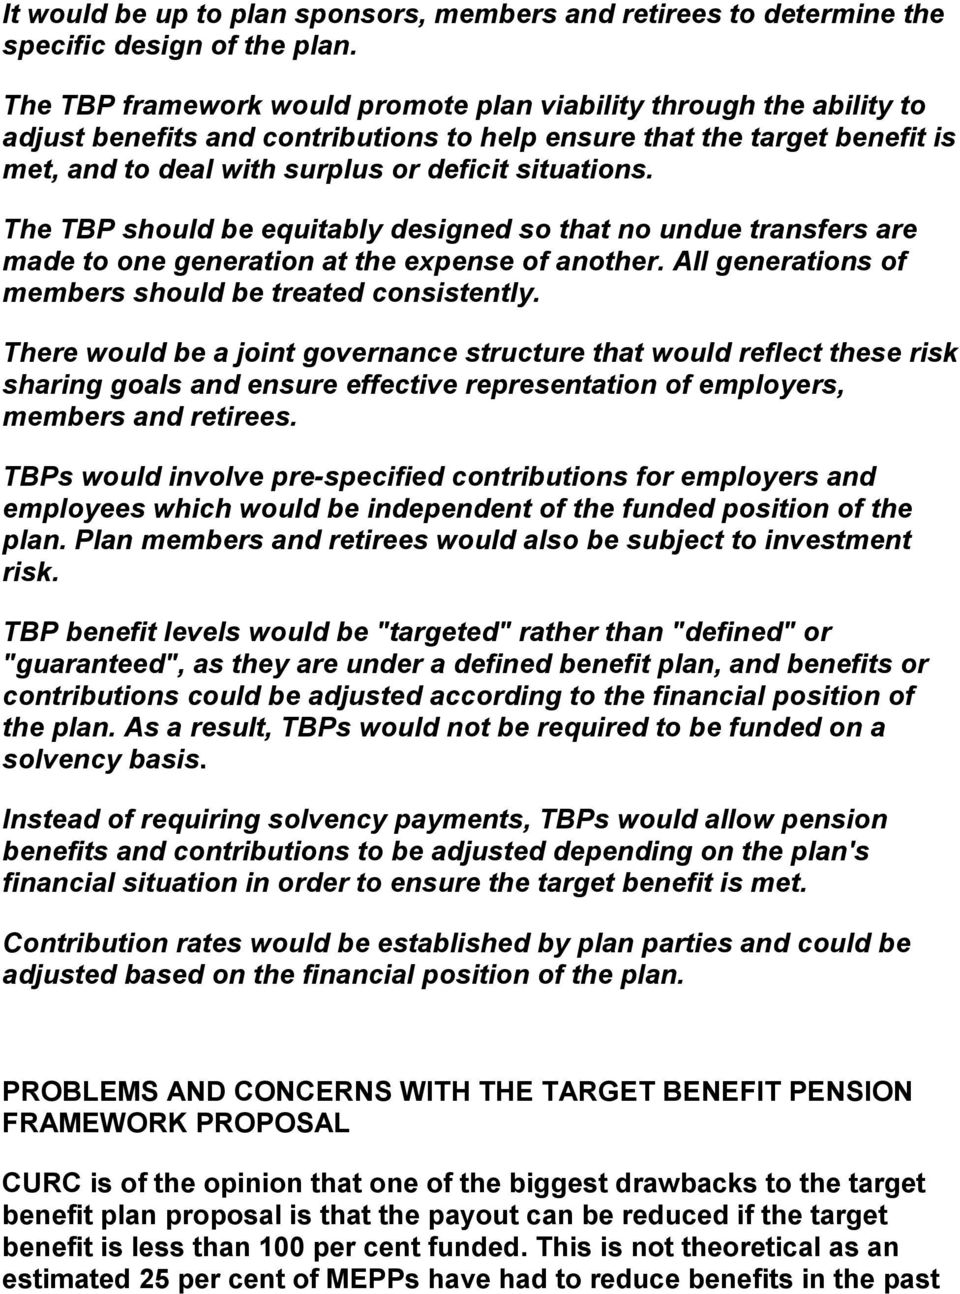 The TBP should be equitably designed so that no undue transfers are made to one generation at the expense of another. All generations of members should be treated consistently.